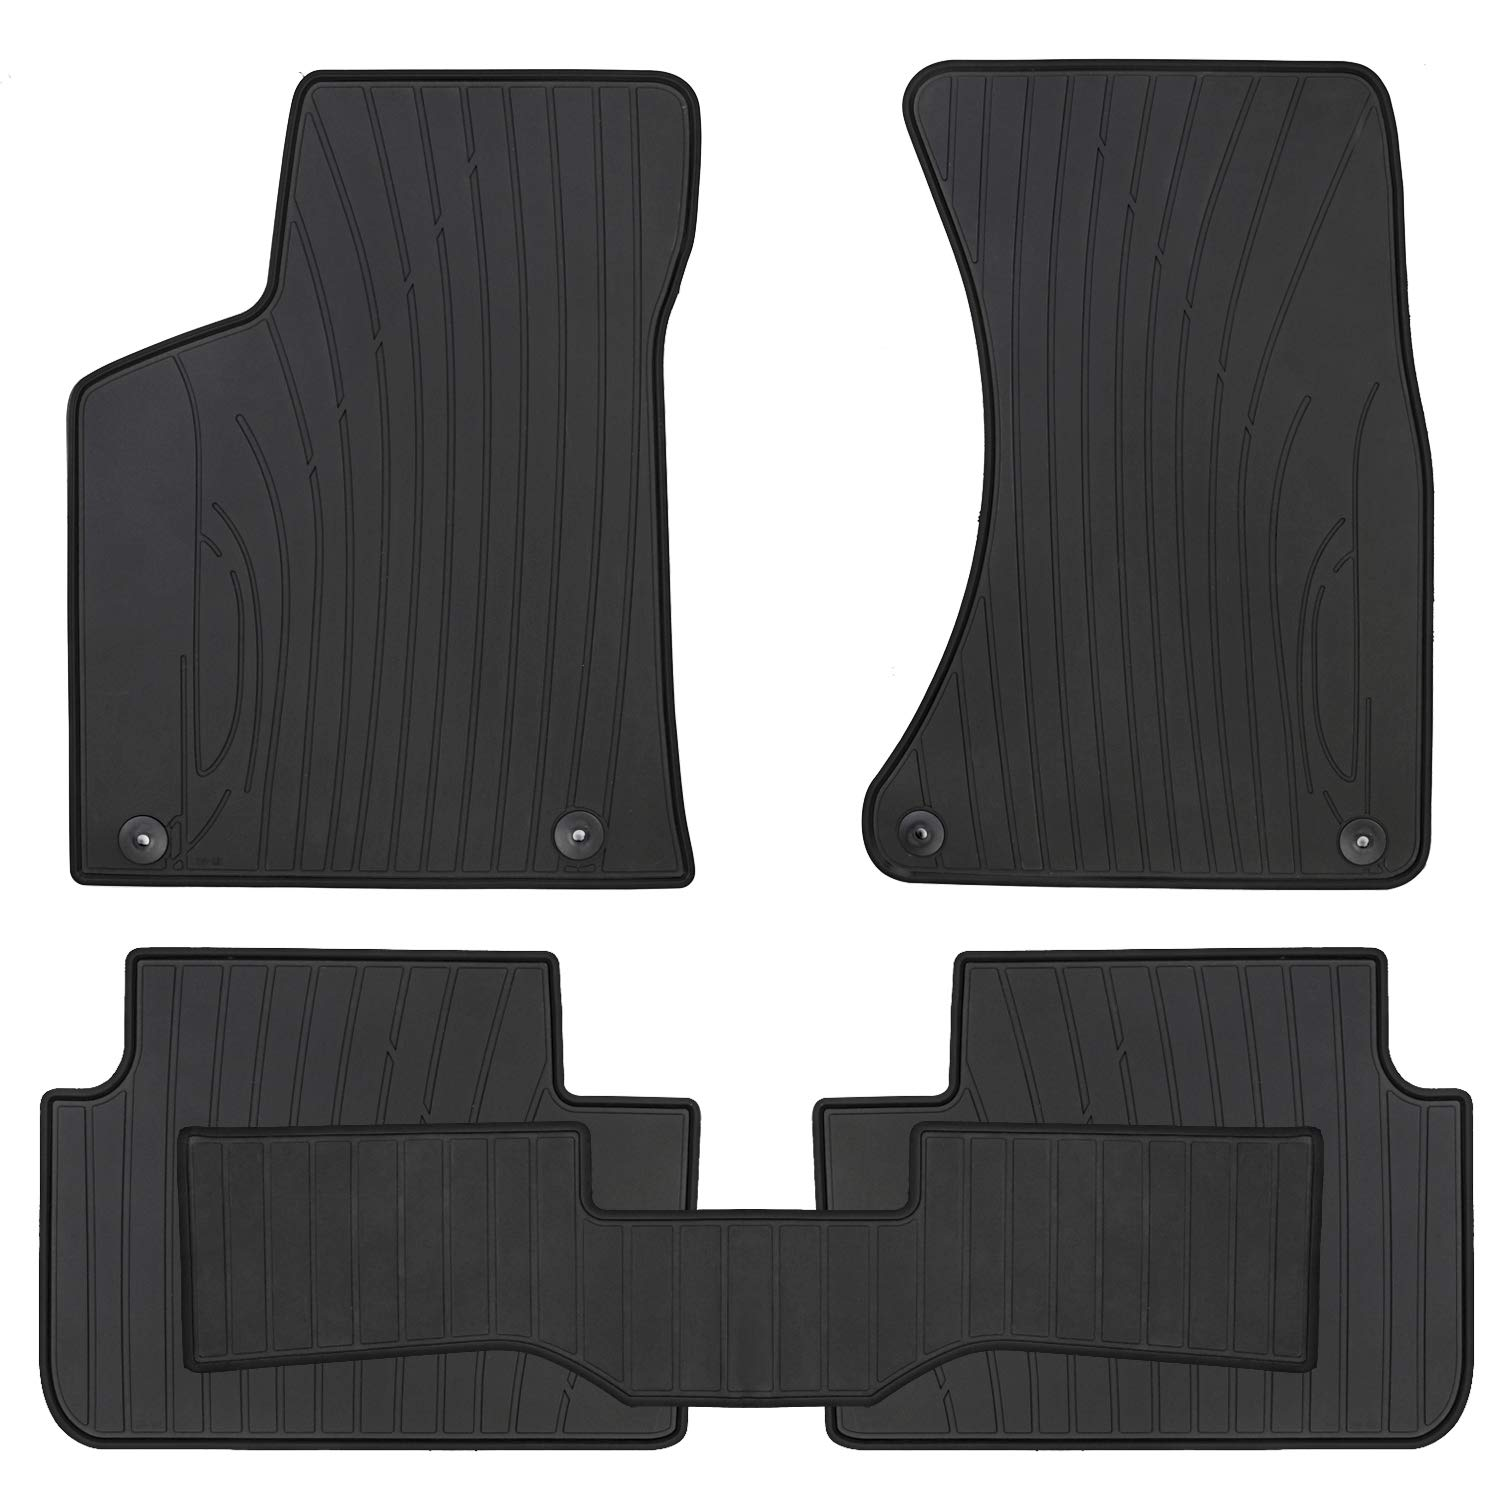 San Auto Car Floor Mat Rubber Custom Fit for Porsche Macan 2019 2018 2017 2016 2015 2014 Full Black Auto Floor Liners All Weather Heavy Duty Odorless